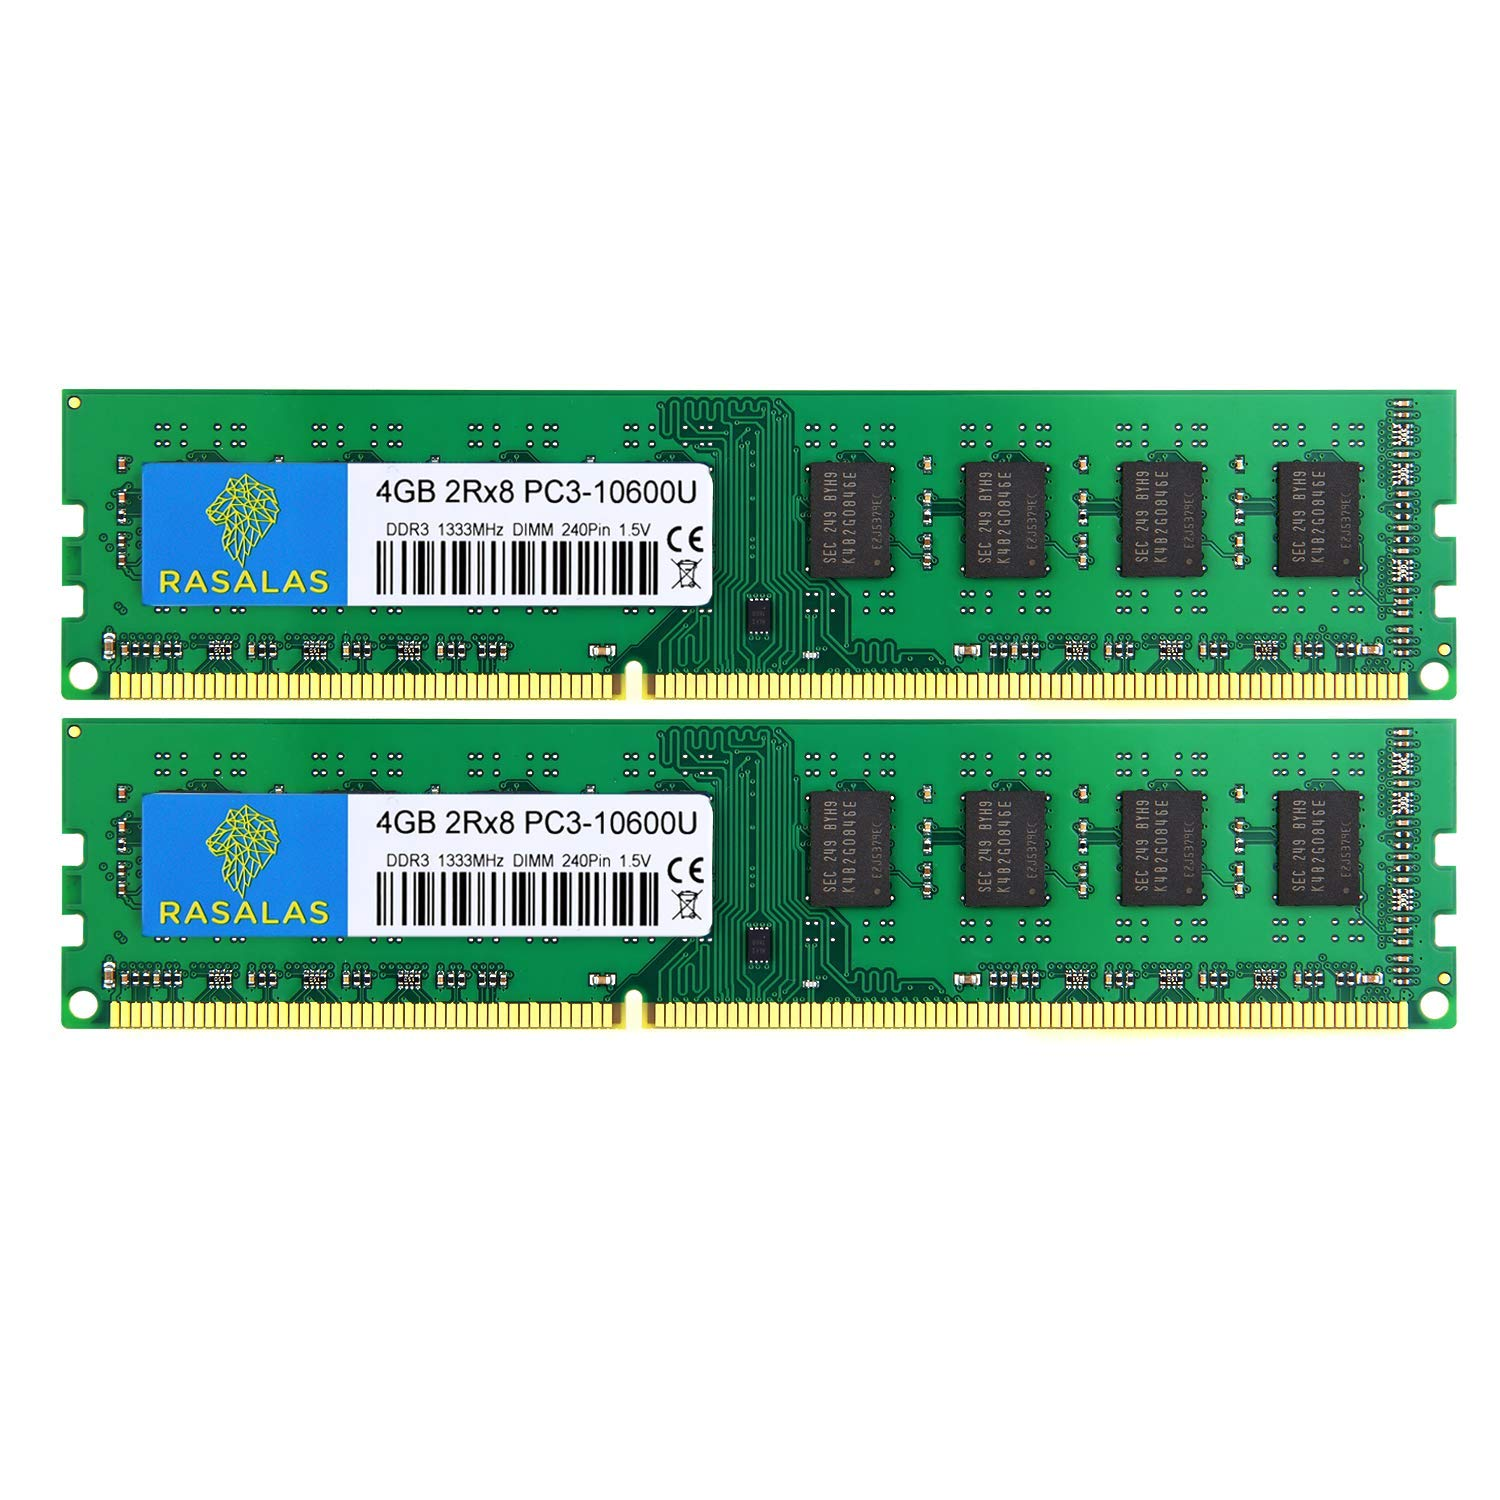 Memoria Ram 8gb Rasalas Kit (2x4gb) Pc3-10600 Ddr3 1333 Pc3 10600u Ddr3 2rx8 Pc3 10600u 1333 Mhz Ddr3 1.5v Cl9 240-pin D